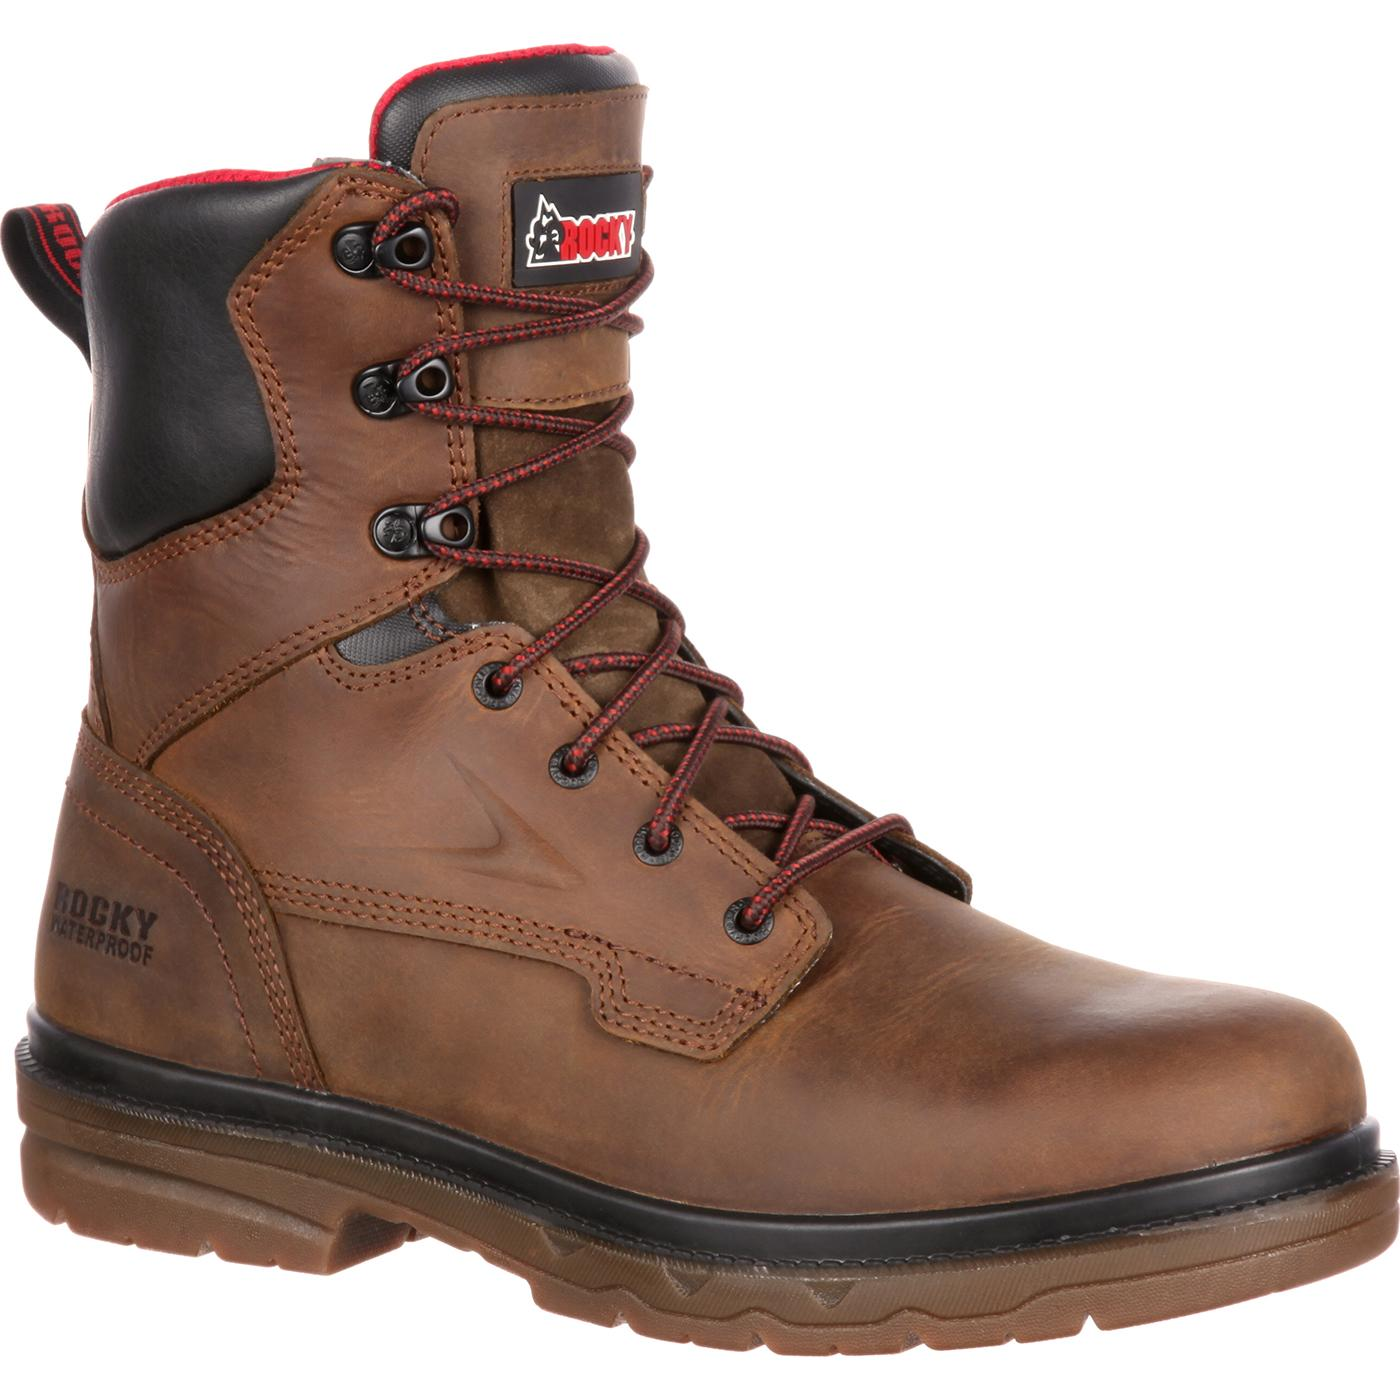 Rocky Elements Shale Men's Waterproof Work Boot for drilling